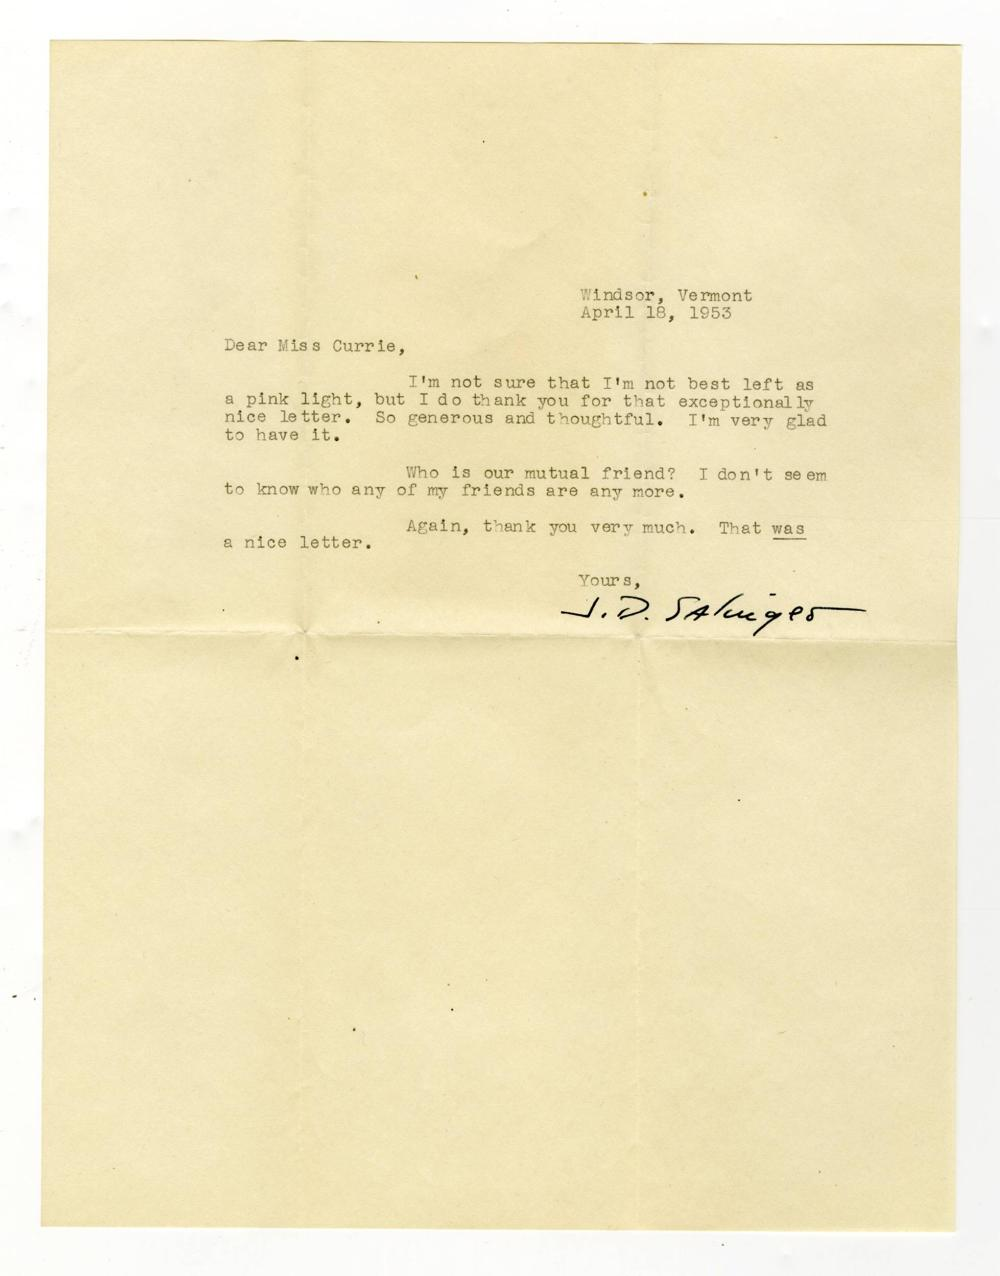 J. D. Salinger, 3 Great Items with Writing Content, One Signed in Full